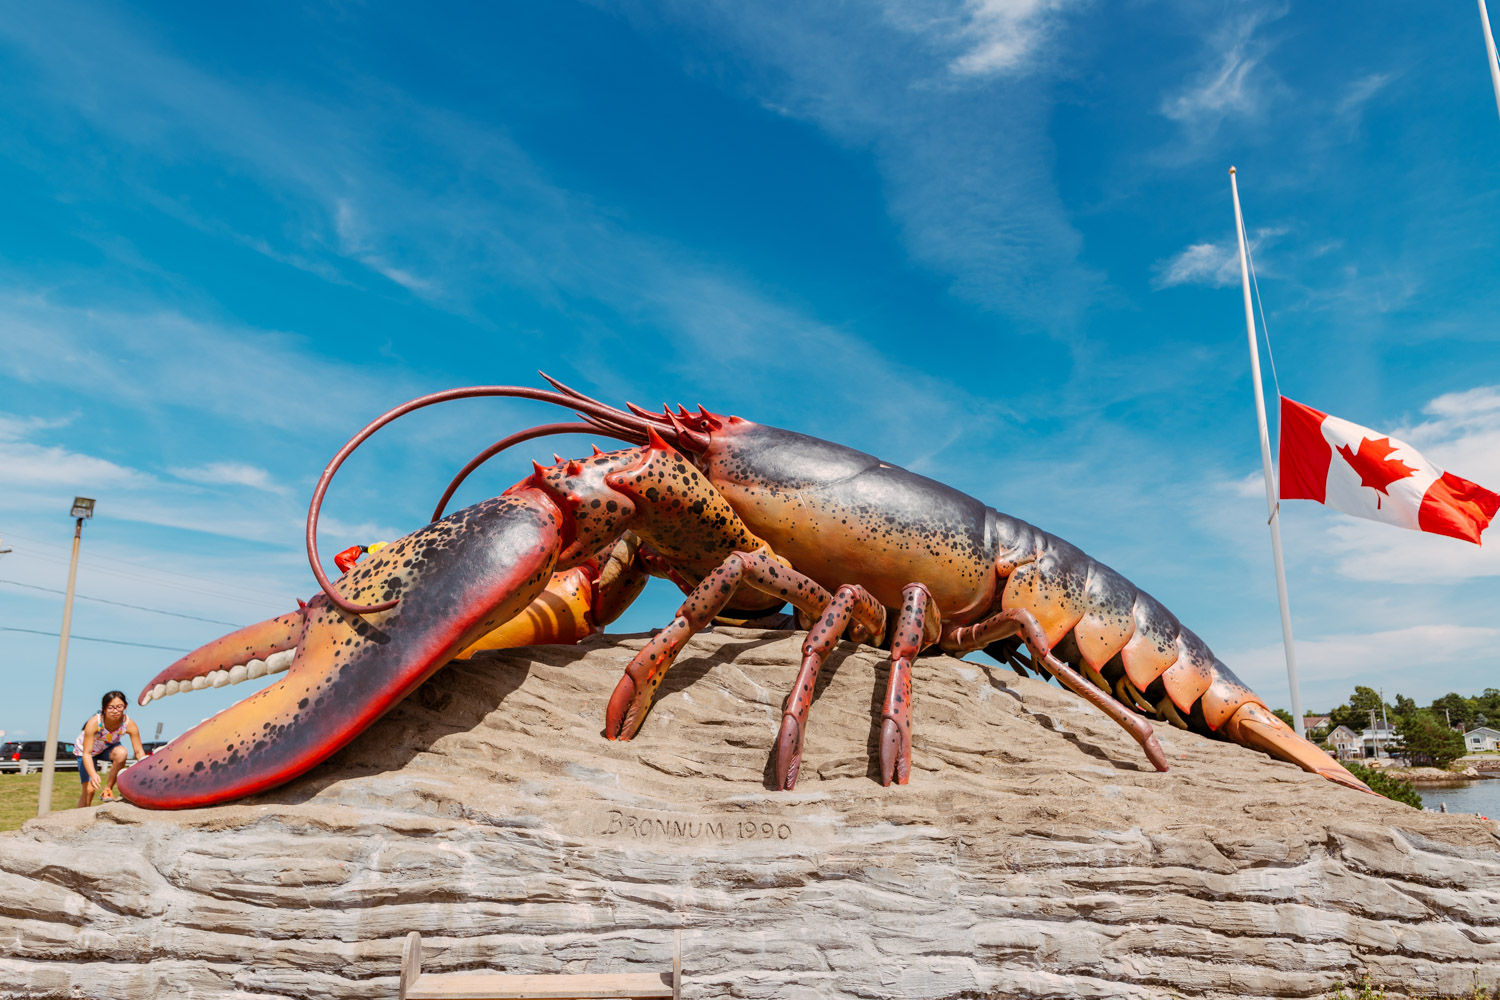 Shediac Giant Lobster — Le Sud-Est du Nouveau-Brunswick — Expérience Acadie — Travel — Jeff On The Road